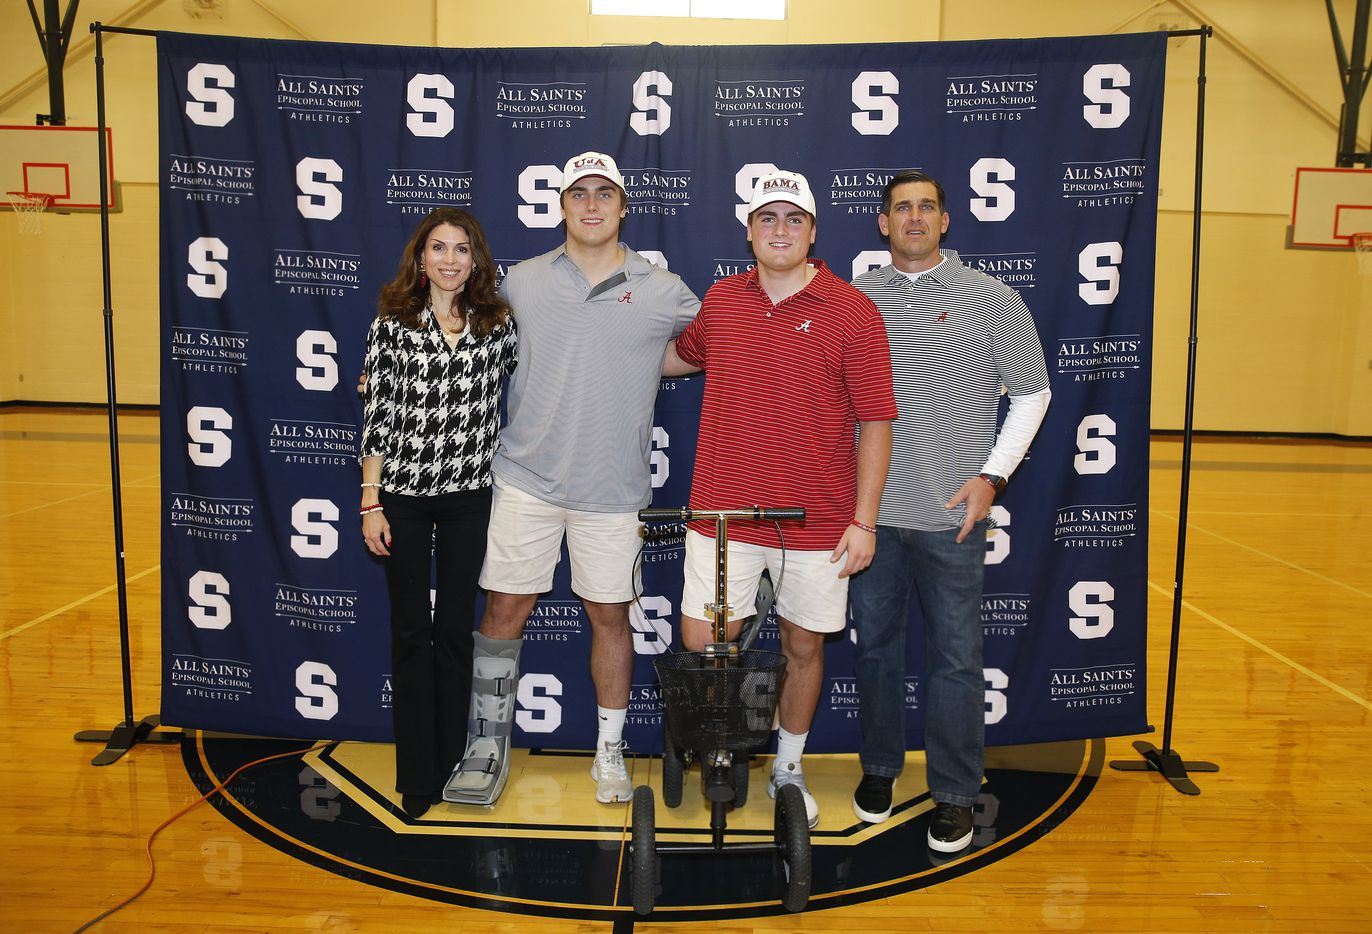 Fort Worth All Saints' Episcopal School offensive lineman Tommy Brockermeyer (center, left) and his twin brother James Brockermeyer both signed their national letters of intent with Alabama in the schools gymnasium, Wednesday, December 16, 2020. They are joined for a photo with their parents Kristy and Blake Brockermeyer. (Tom Fox/The Dallas Morning News)